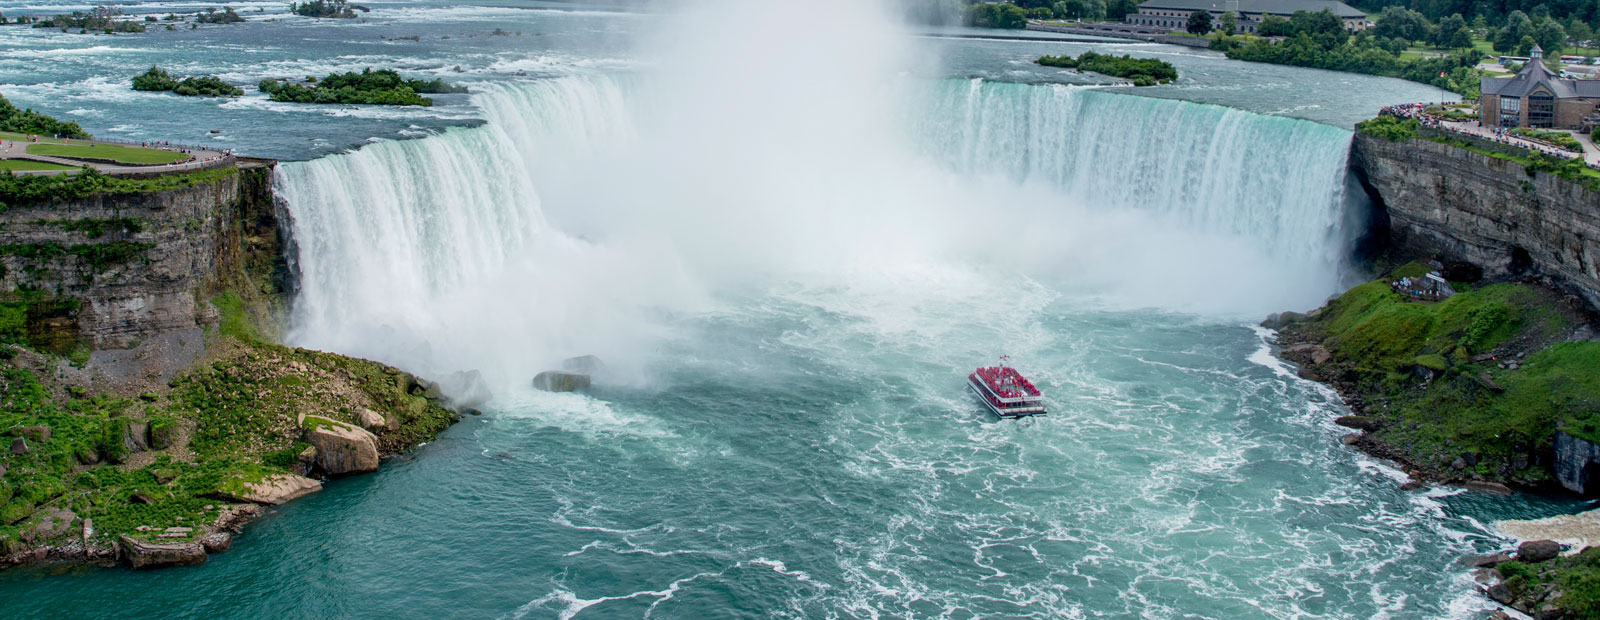 Ultimate Niagara Falls Experience Tour Package